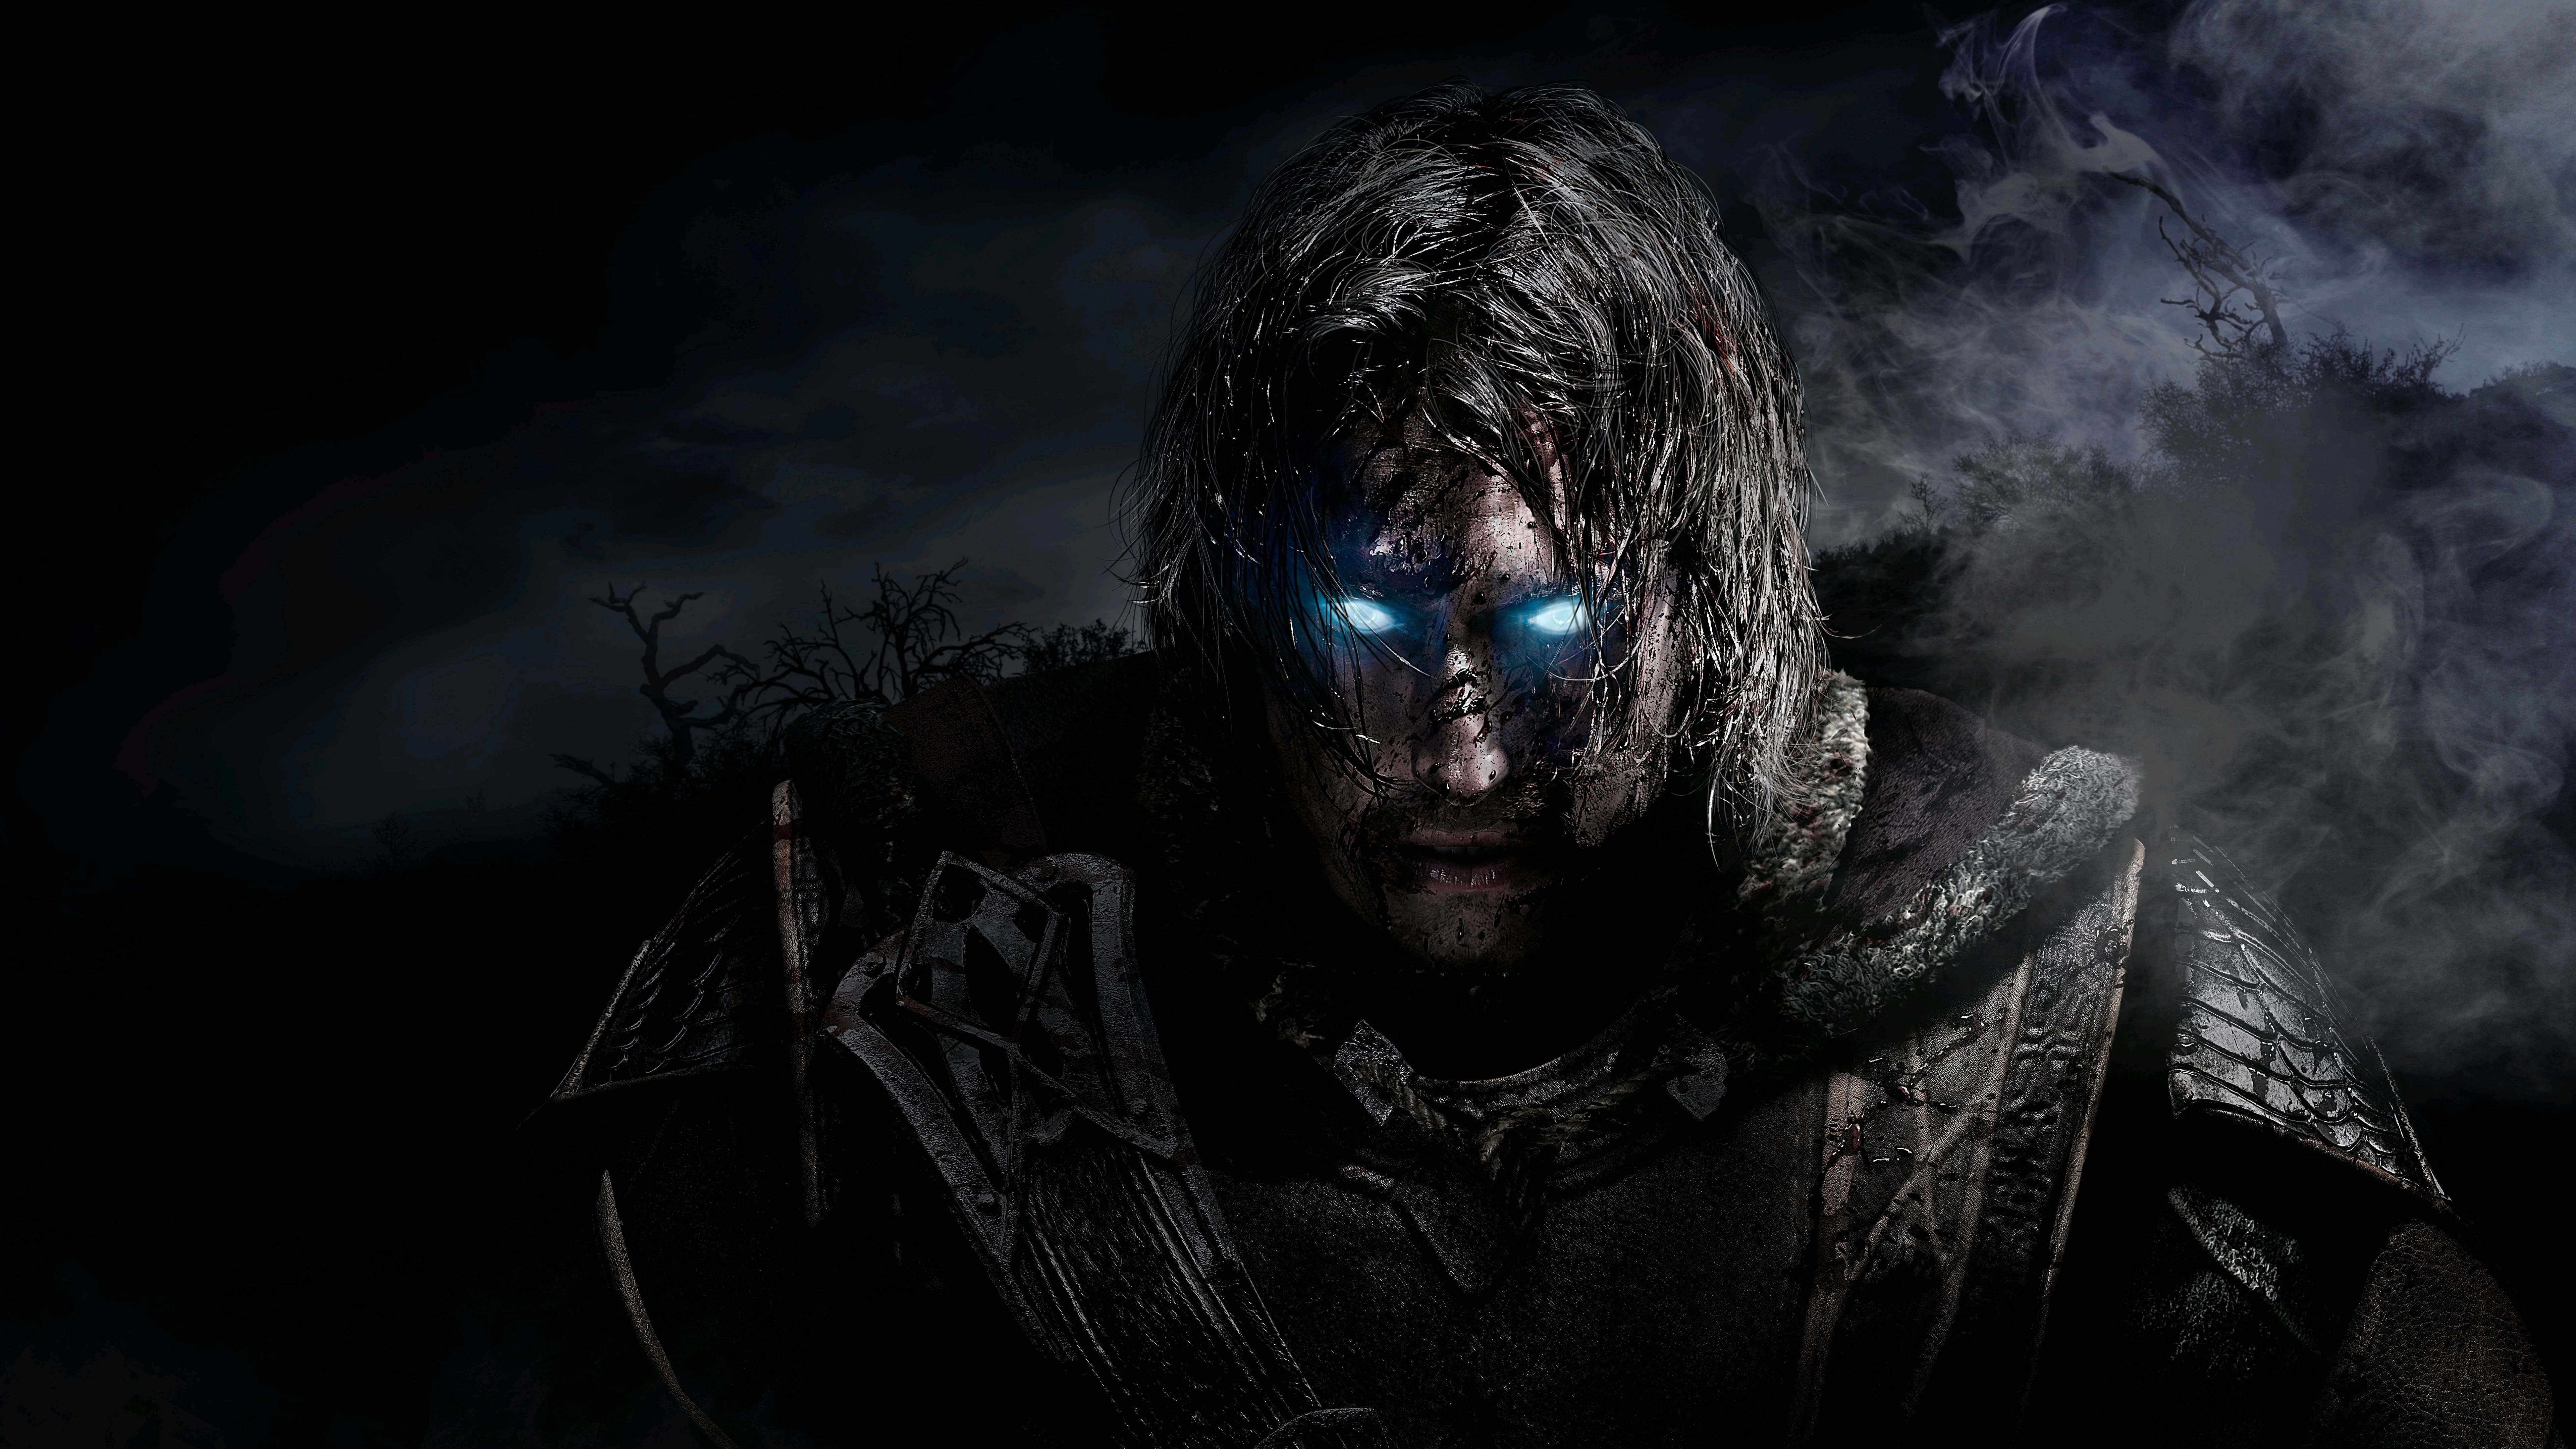 16k Uhd Wallpaper: Middle Earth - Shadow Of Mordor UHD 8K Wallpaper